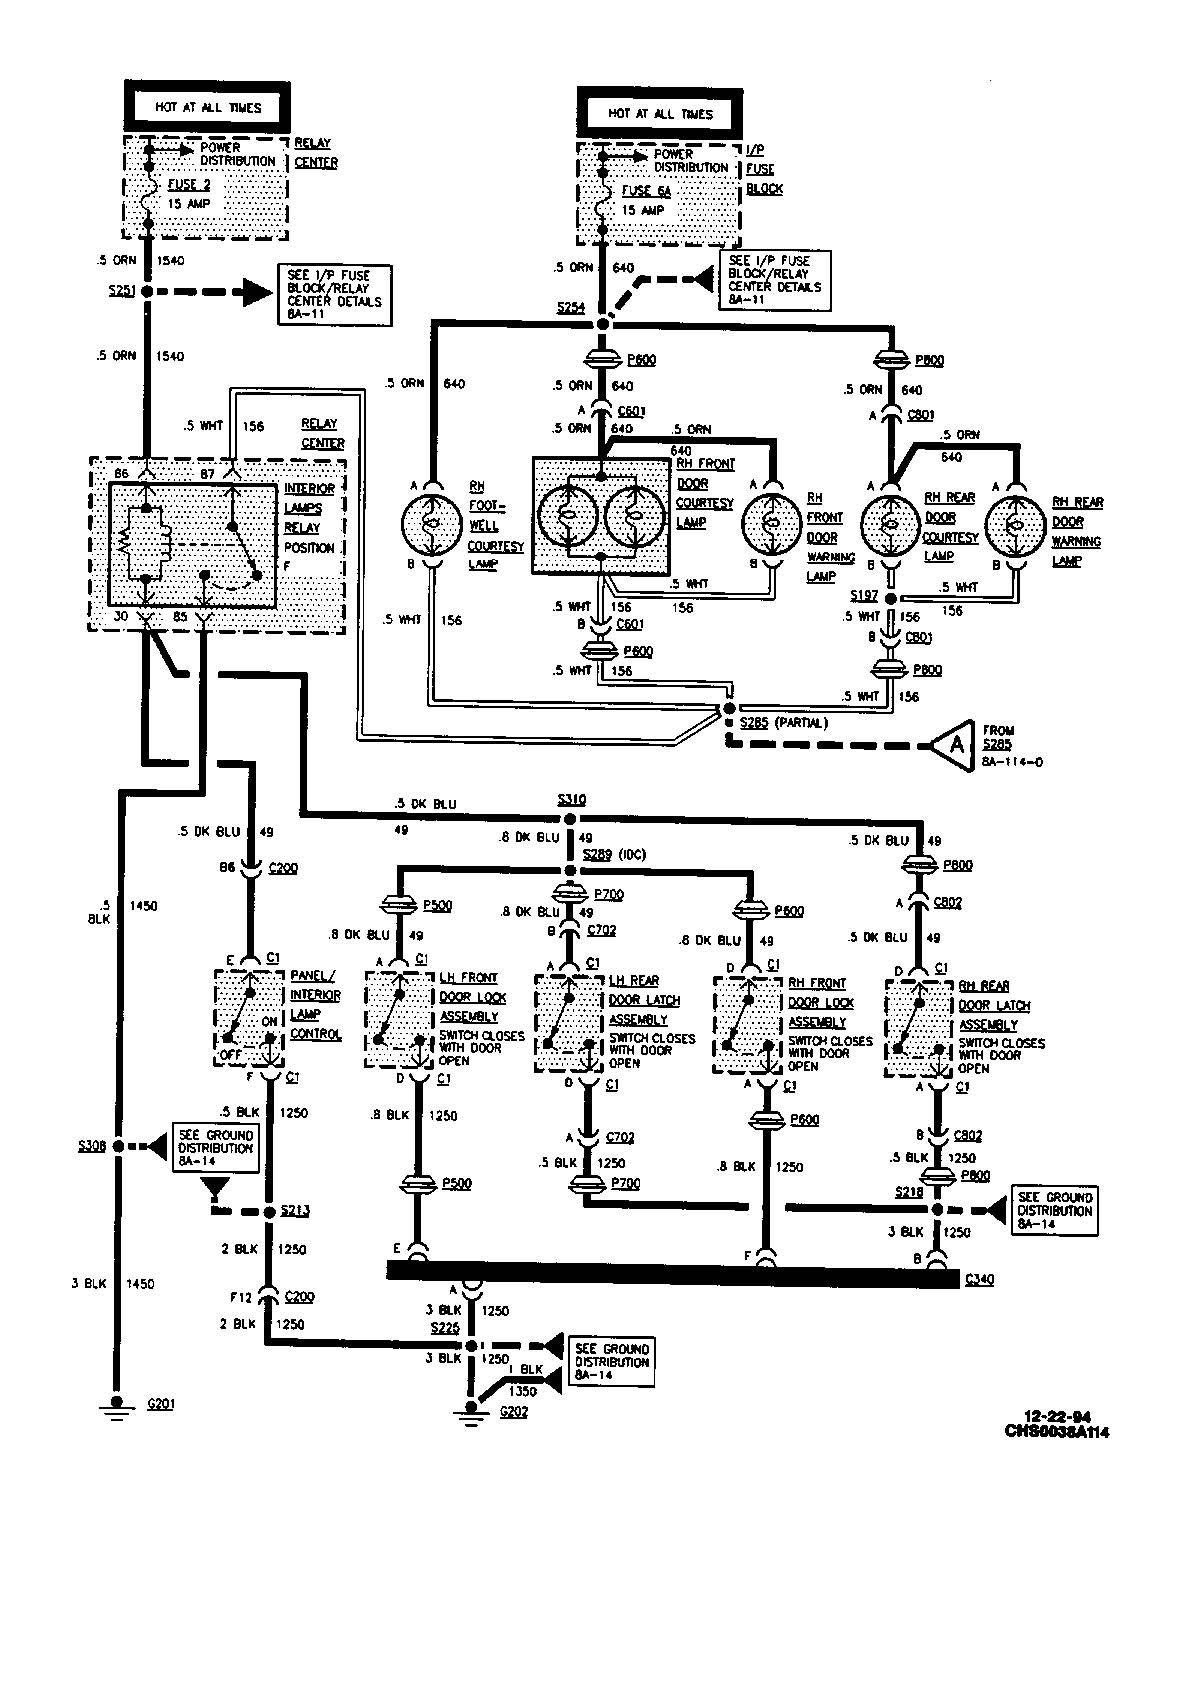 [WRG-7045] Chevy 3800 Engine Diagram